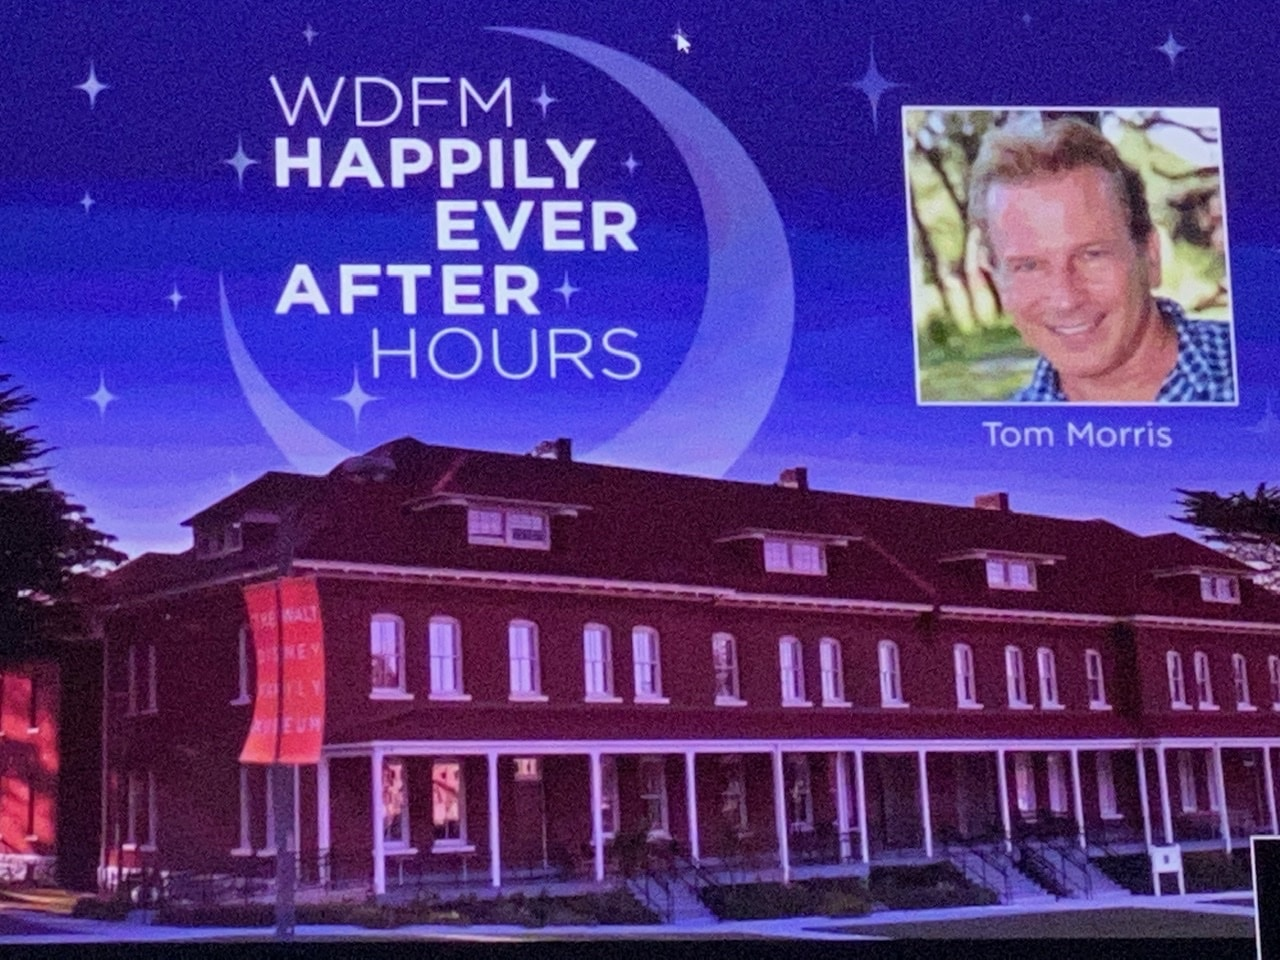 Tom Morris Shares About Making Iconic Magic at the Disney Parks During Walt Disney Family Museum Happily Ever After Hours Presentation